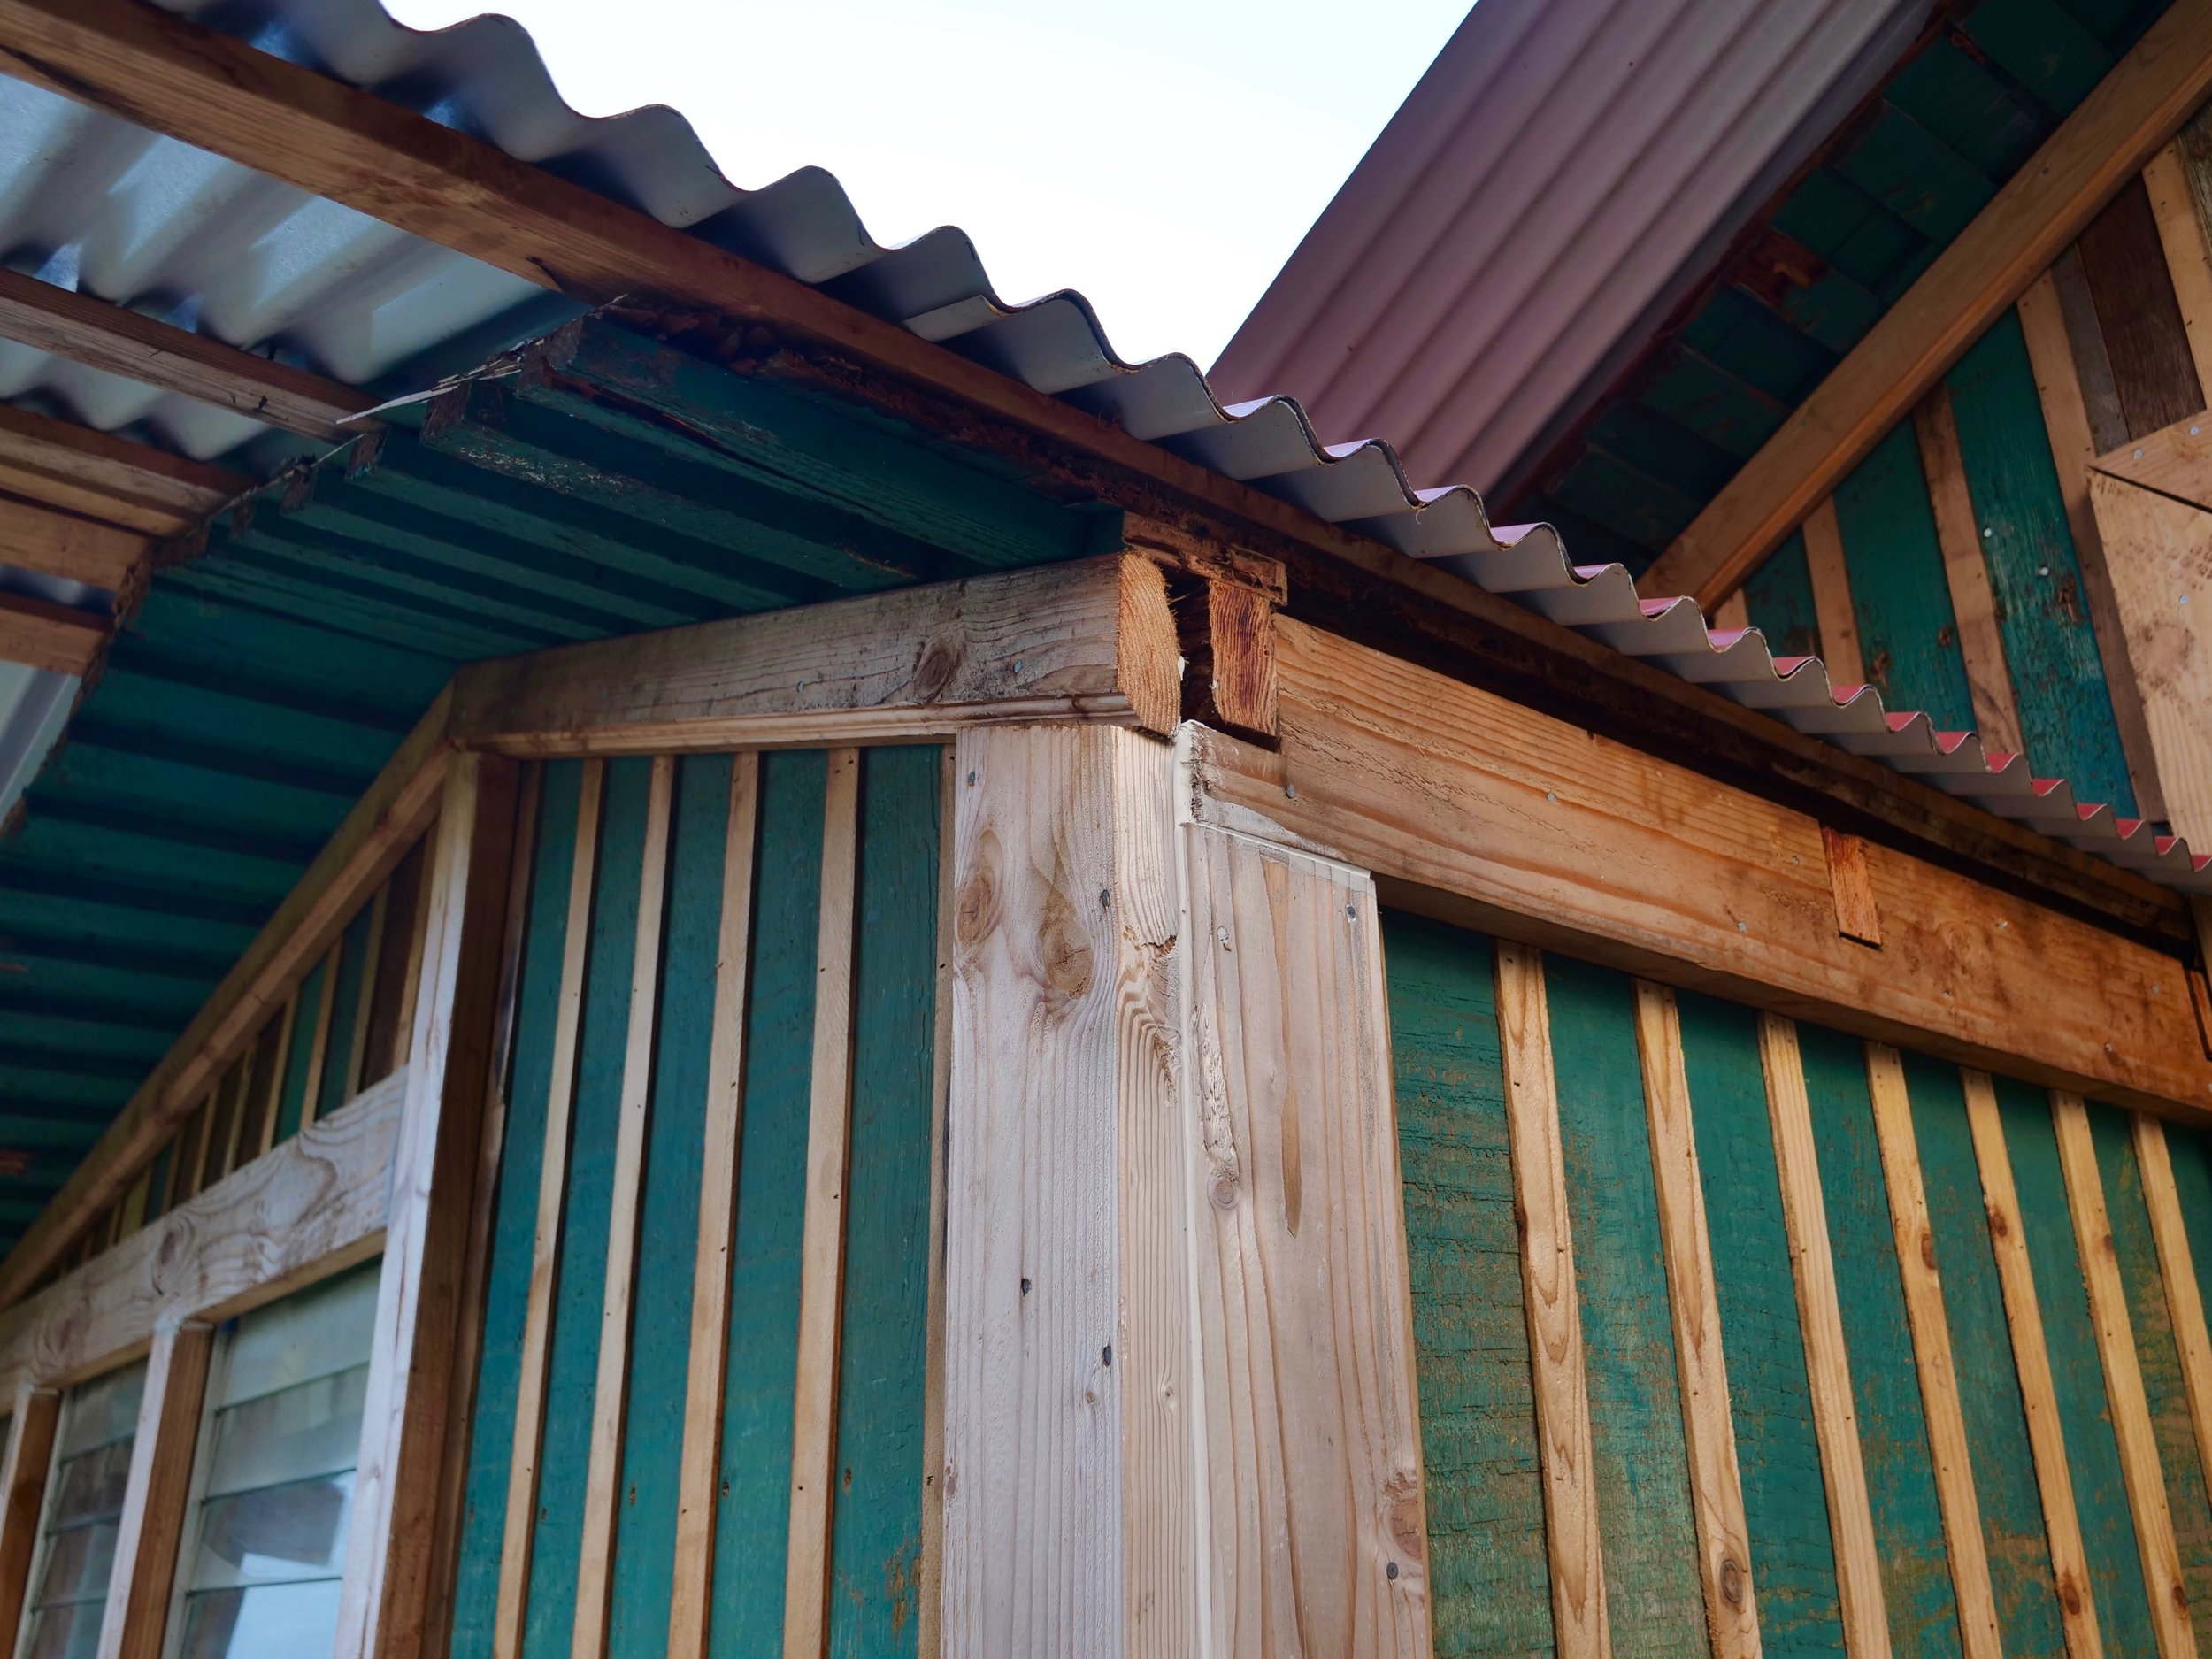 Single wall construction: tongue and groove walls with cedar strips covering the seams, and a tin roof.